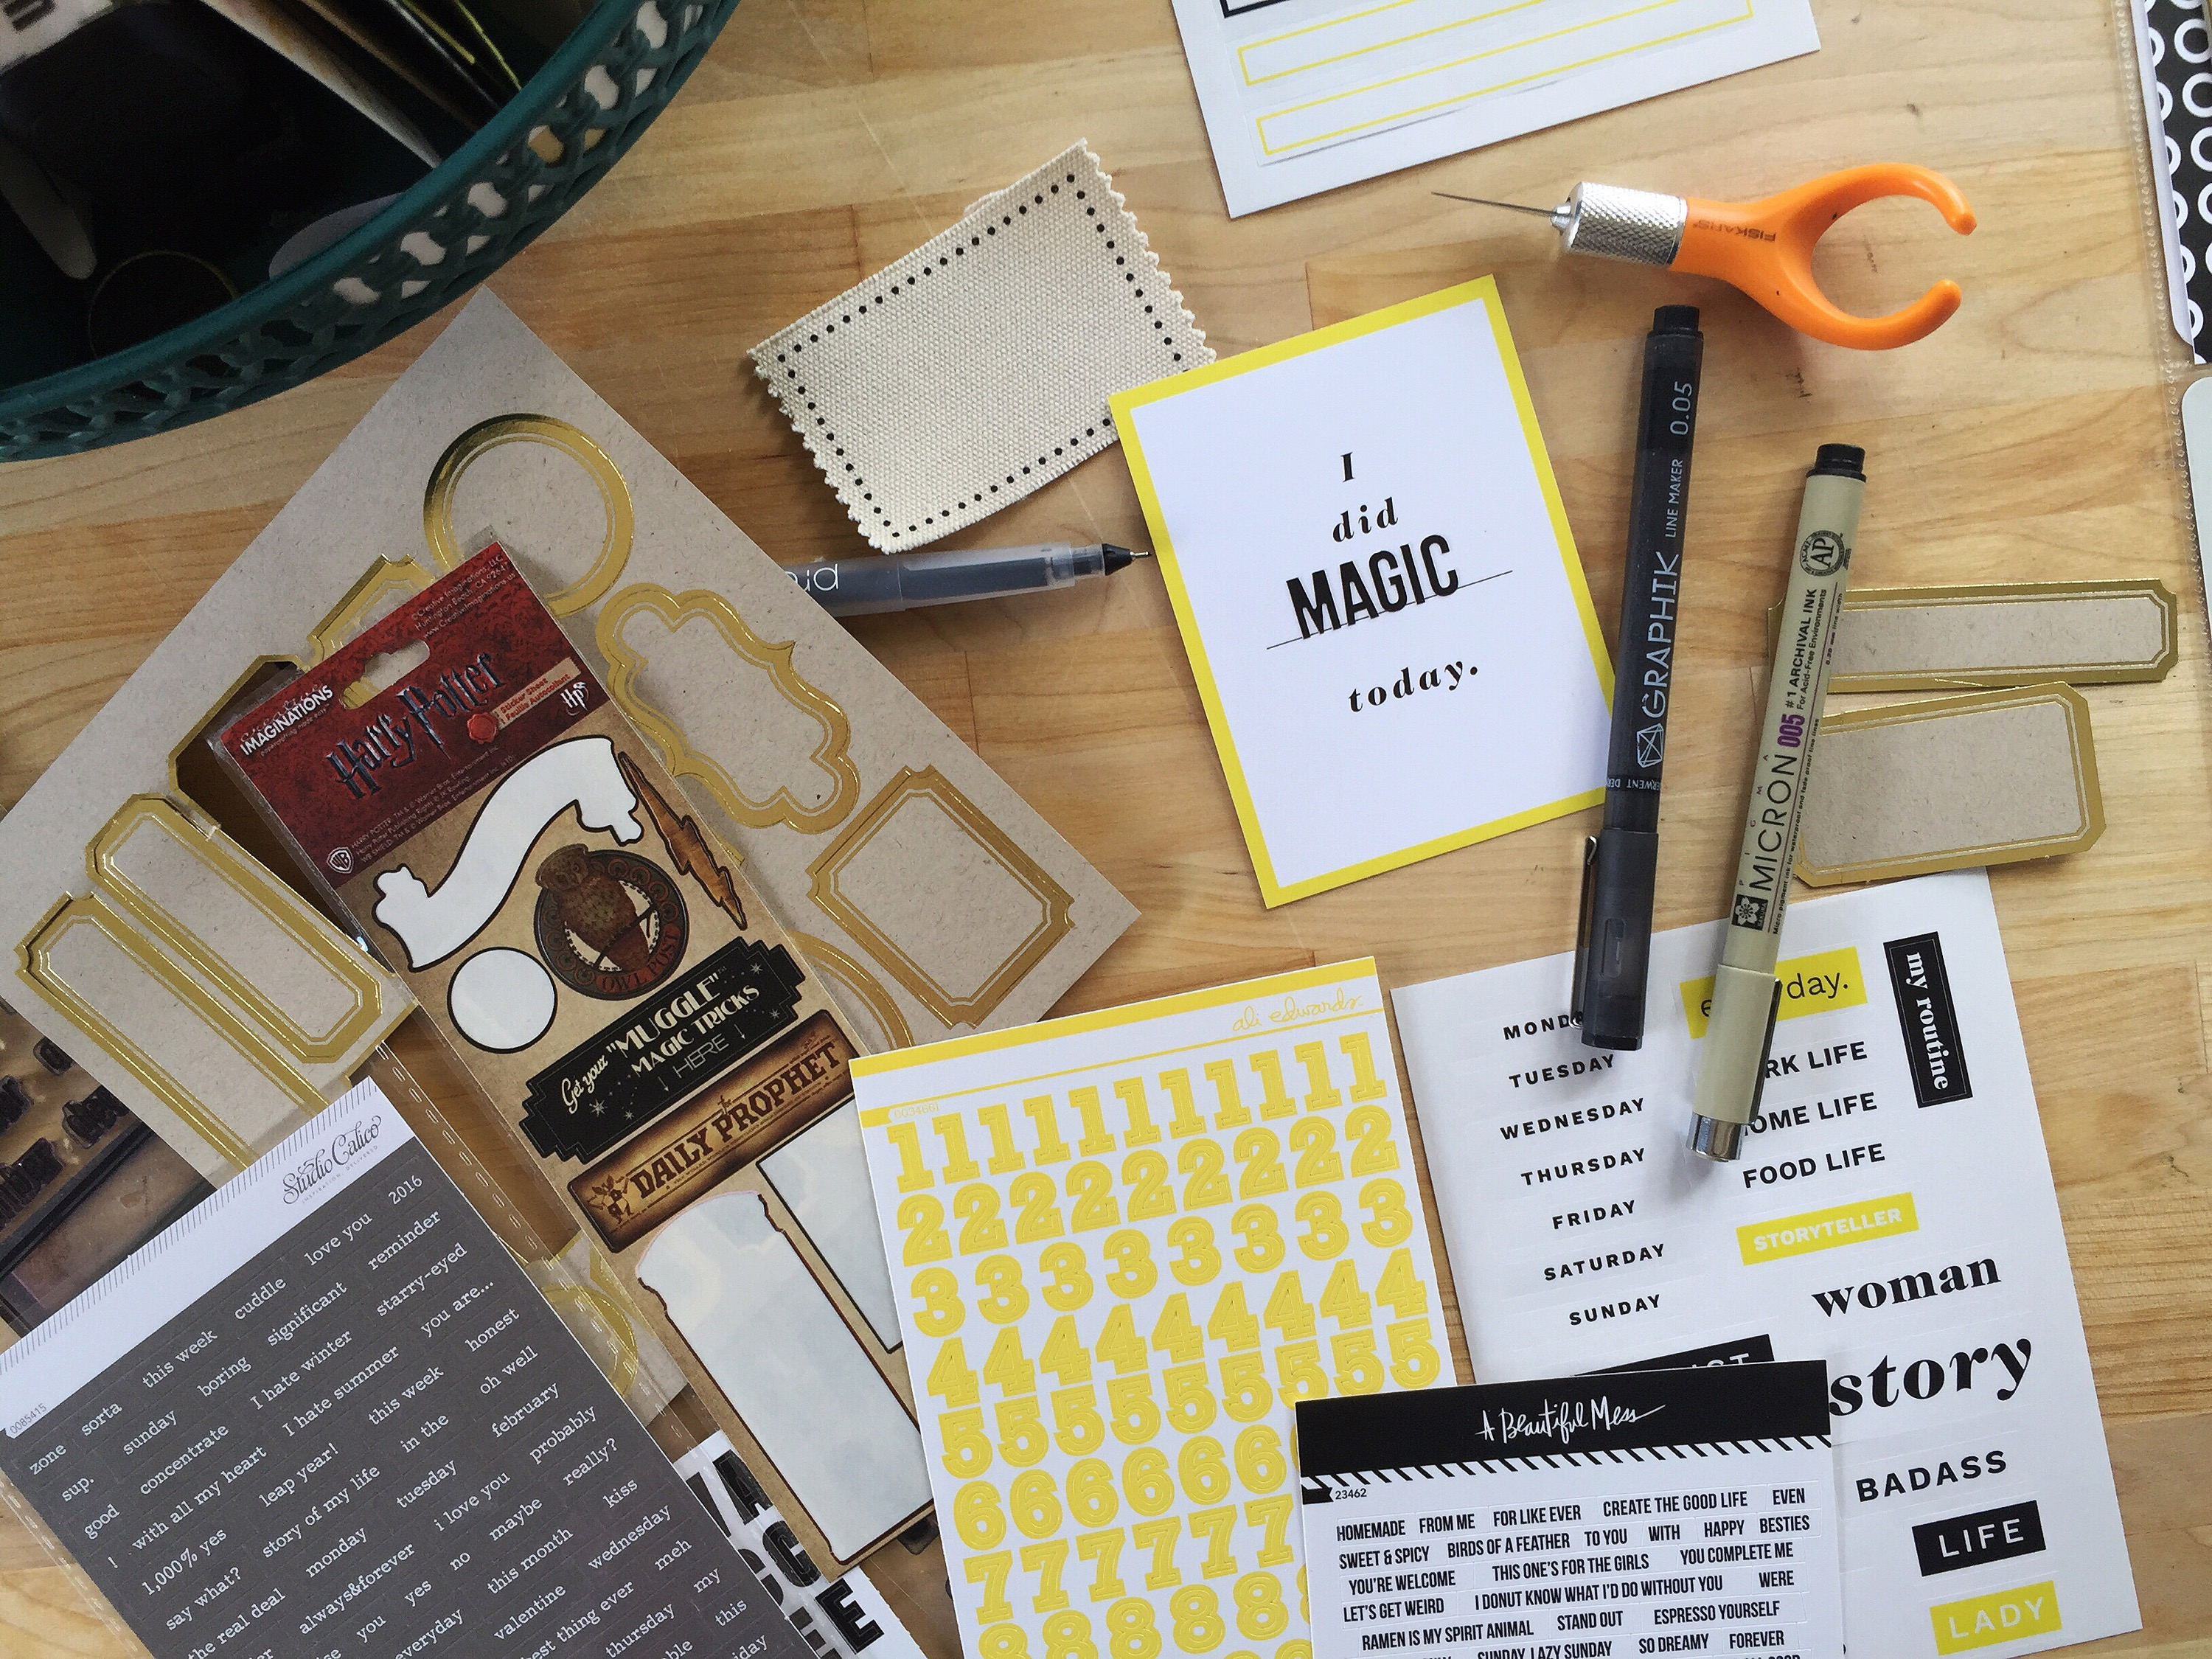 How to scrapbook without page protectors - Albums And Page Protectors Are Definitely Essentials But You Might Be Able To Leave Them At Home If You Re Planning A Scrapbook Day Out And Don T Want To